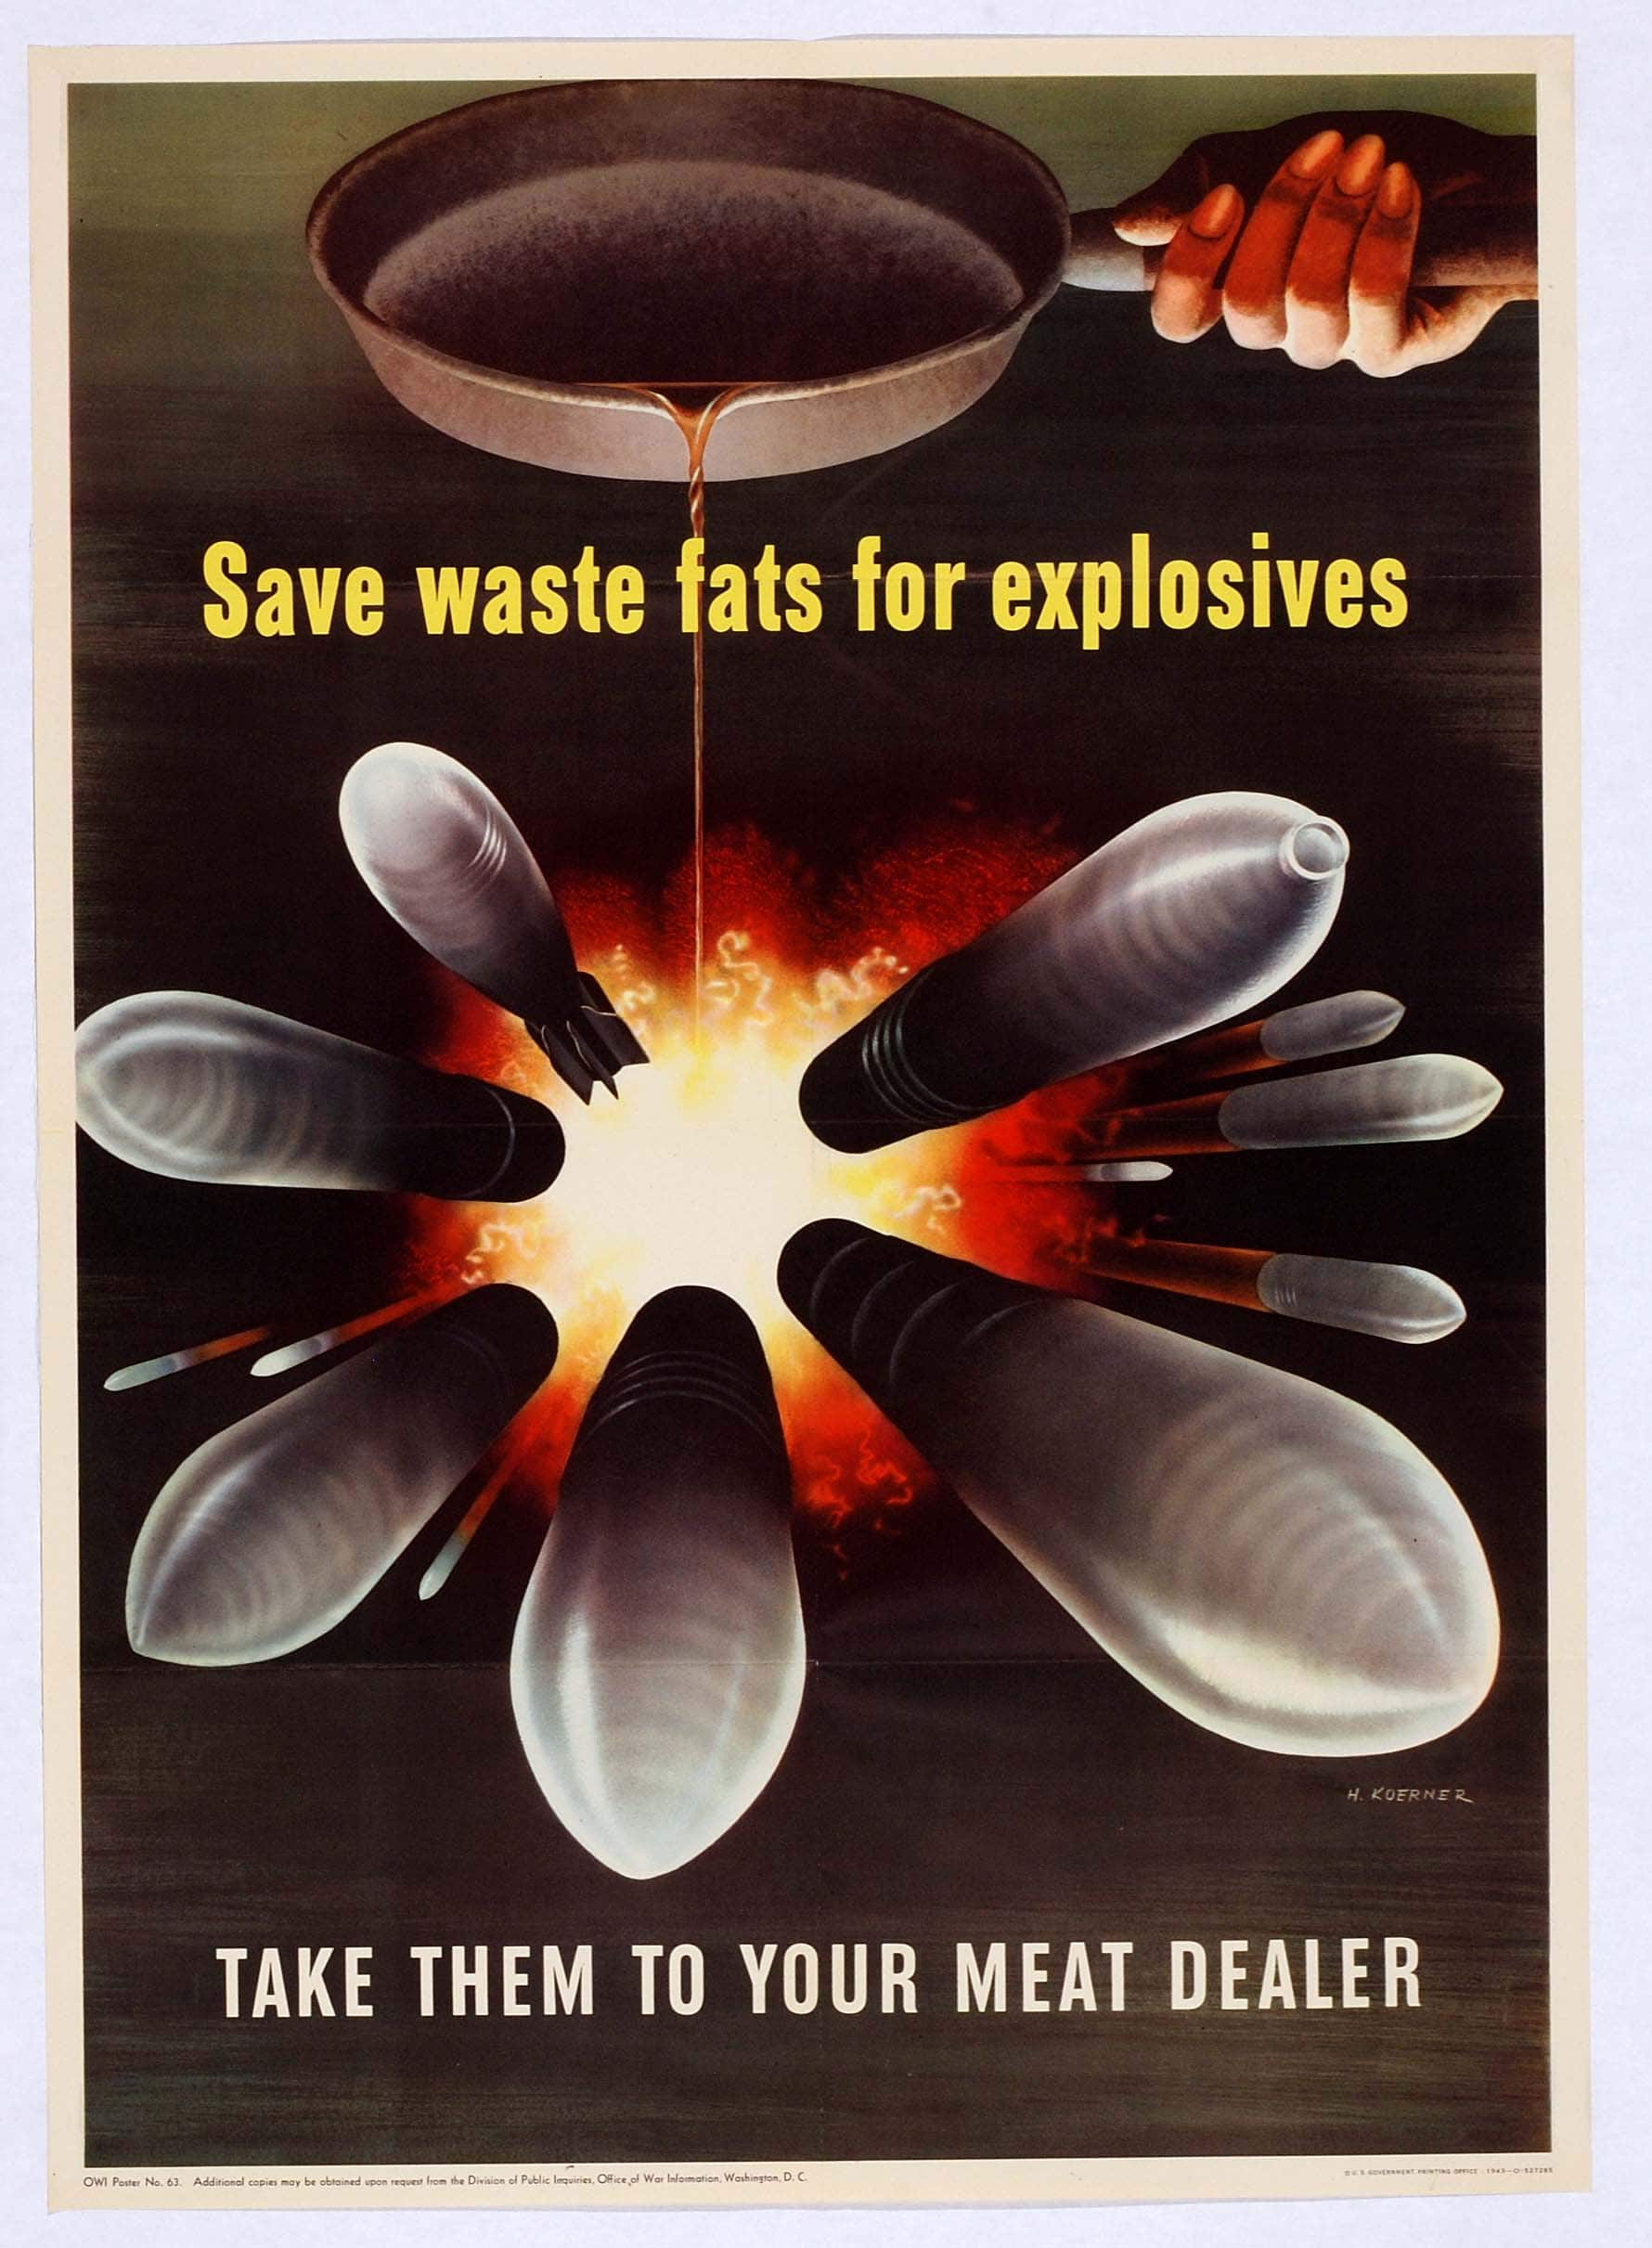 via http://www.crazywebsite.com/Free-Galleries-01/USA_Patriotic/pg-WWII_Posters_Vintage/World_War_2_USA_Food_Rationing_War_Conservation_Posters-1index.html